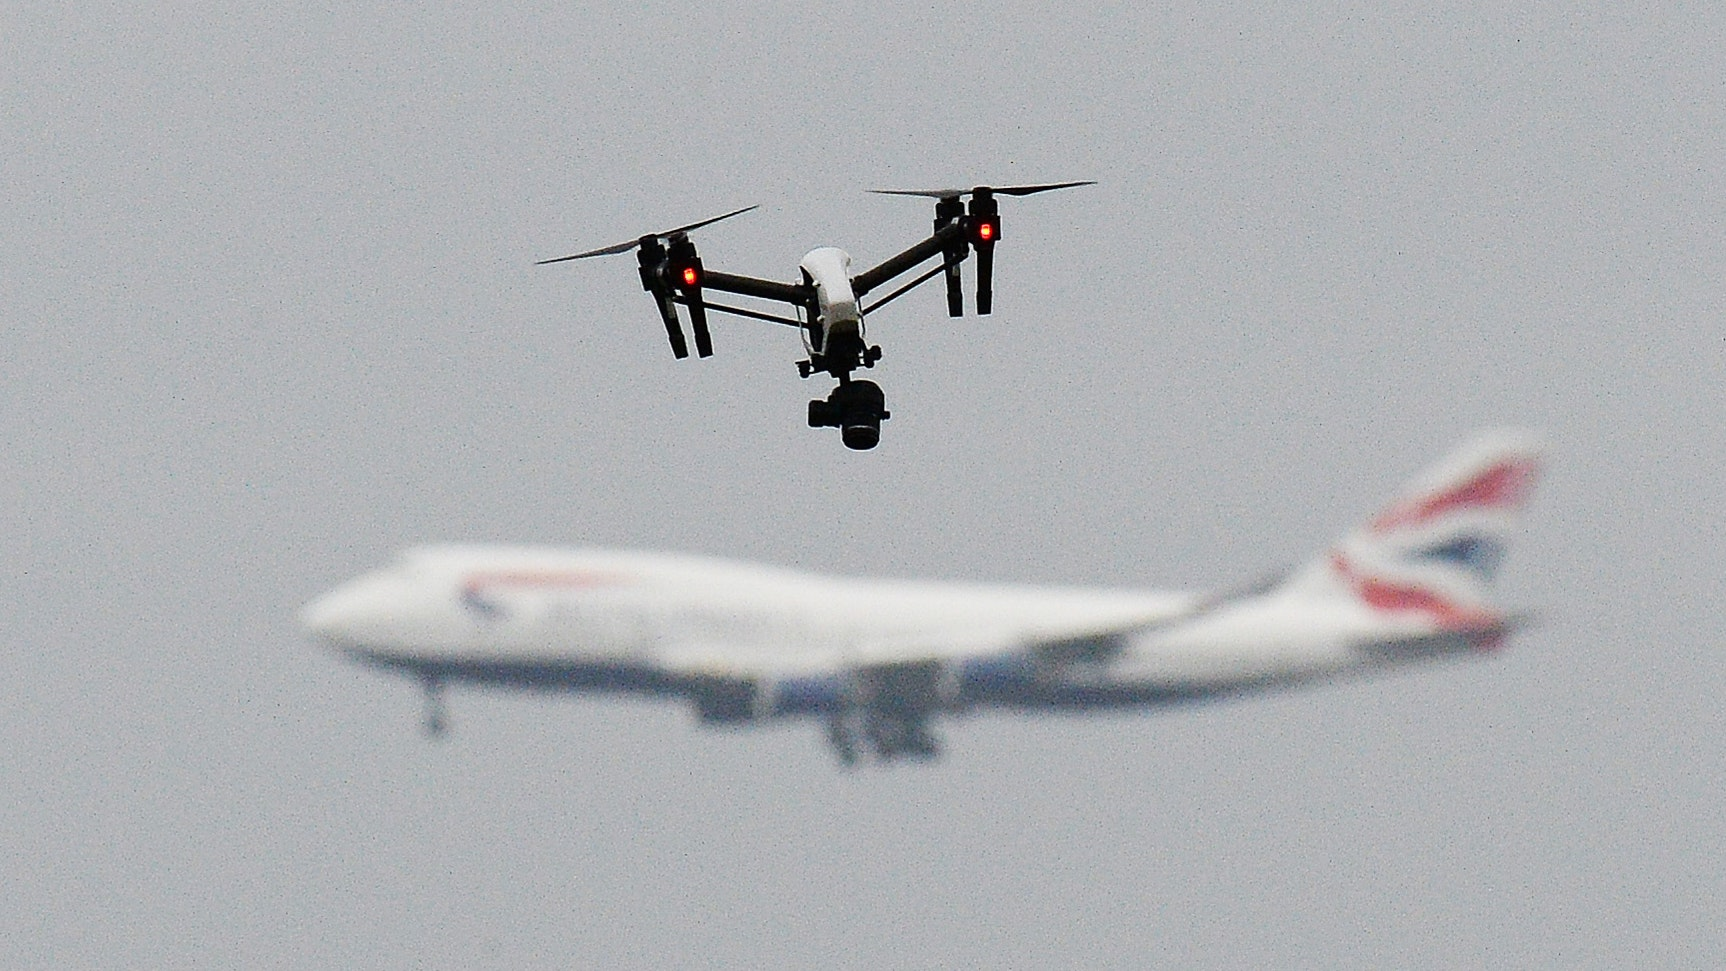 Flights grounded at Heathrow airport after drone sighting